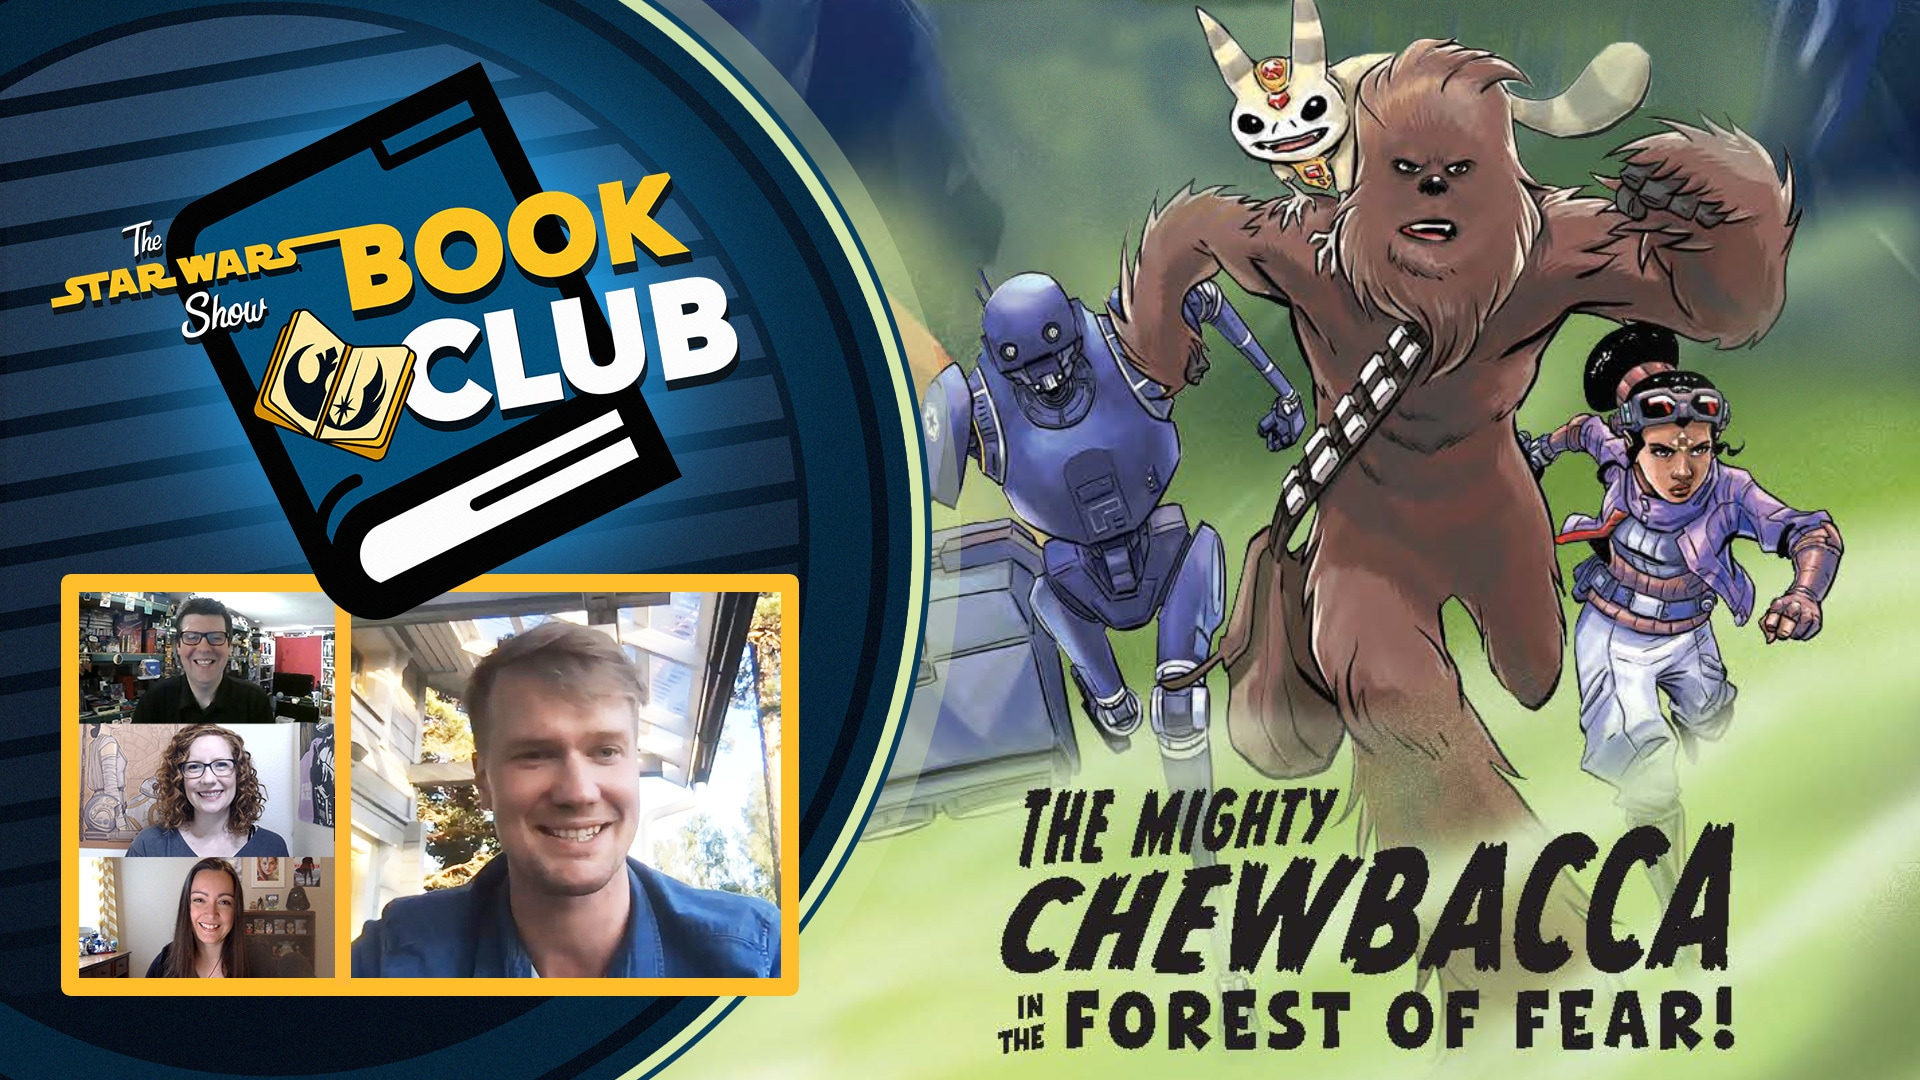 The Mighty Chewbacca in the Forest of Fear  | The Star Wars Show Book Club